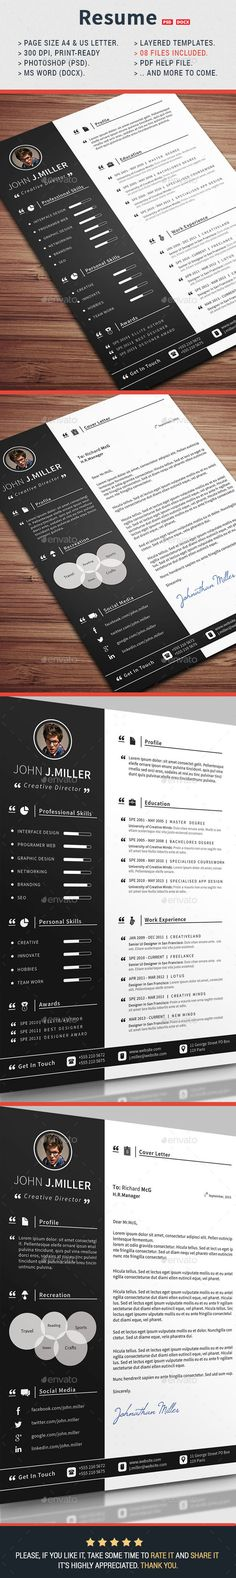 7 resume design concepts which get you hired - Resume Tips Resume Layout, Resume Cv, Resume Tips, Resume Design, Portfolio Resume, Portfolio Design, Cv Template, Resume Templates, Modelo Curriculum